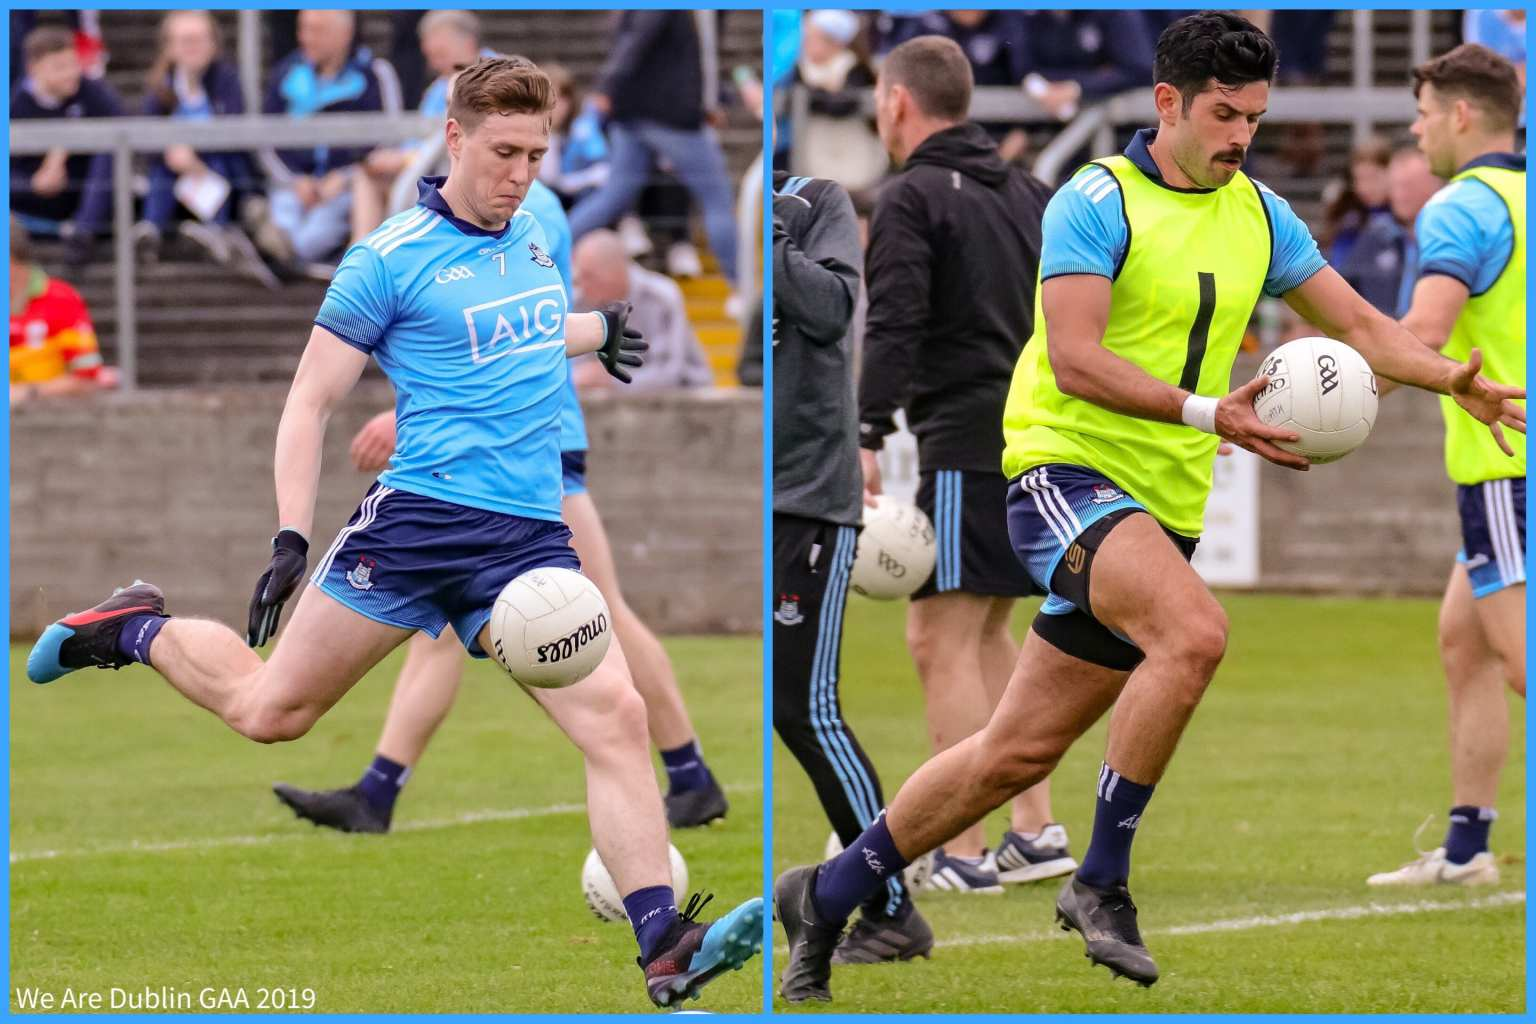 Dublin's John Small On the left and Cian O'Sullivan on the right are injury Concerns ahead of the All Ireland final replay against Kerry.